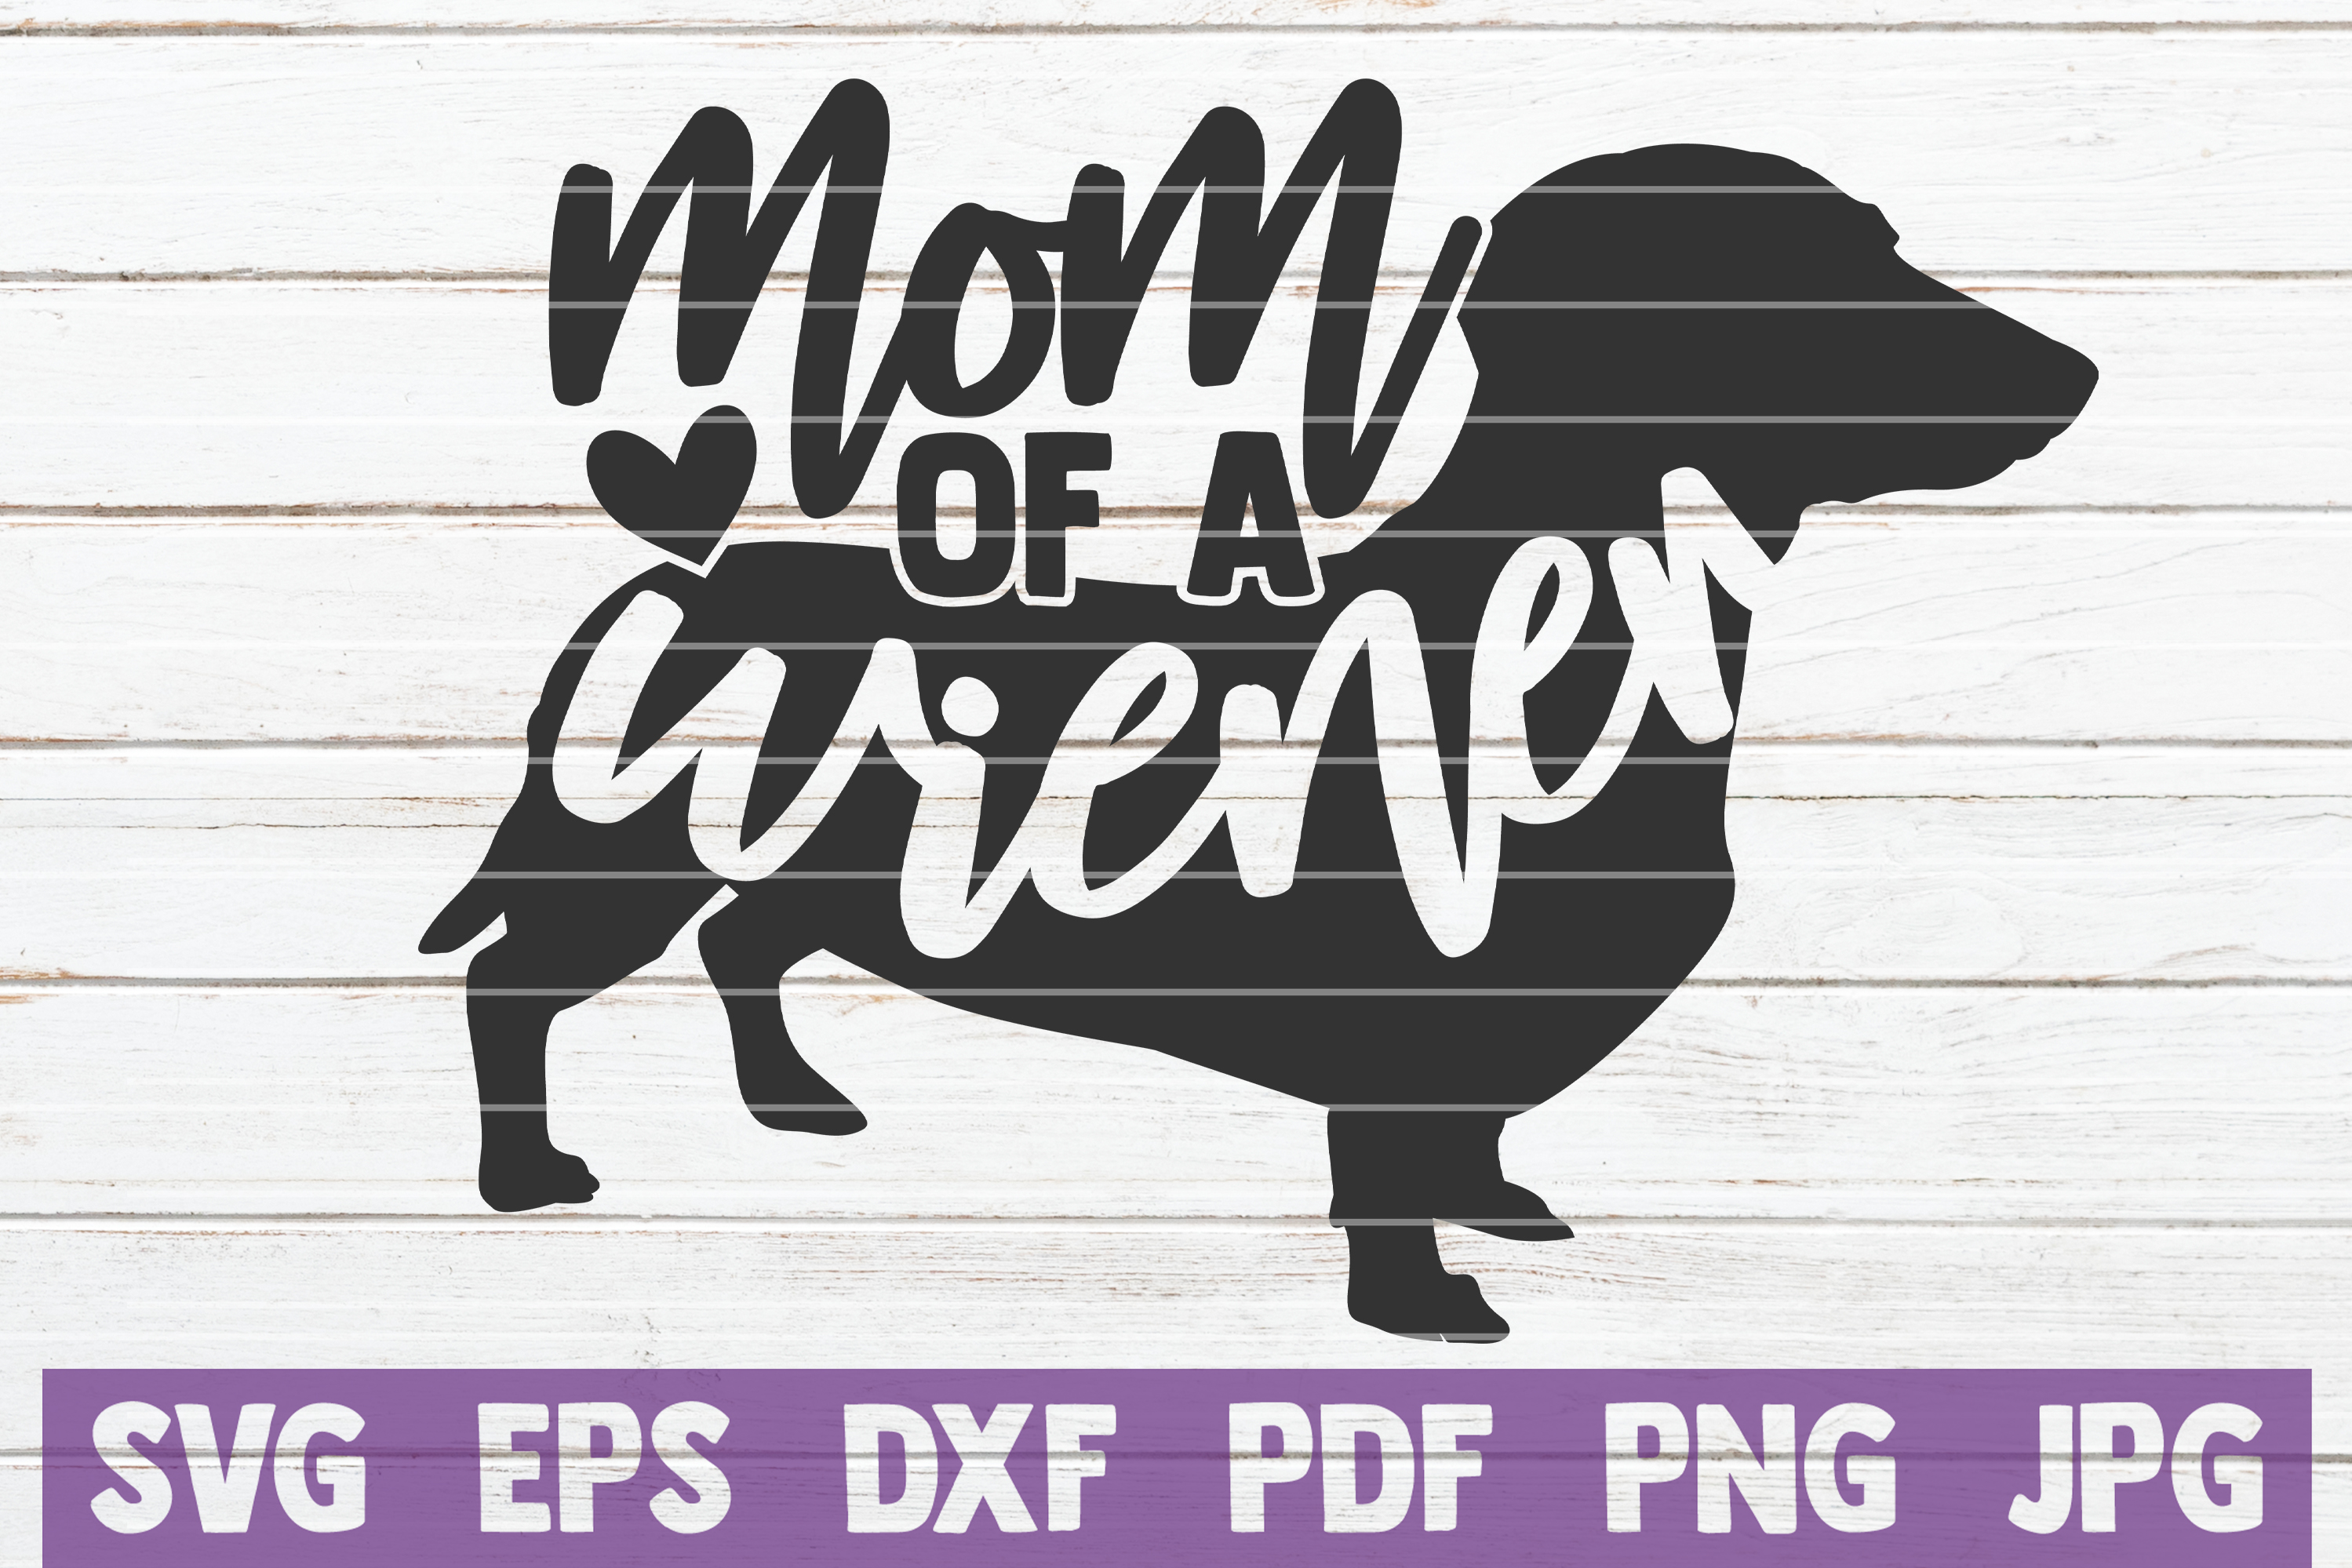 Download Free Mom Of A Wiener Svg Cut File Graphic By Mintymarshmallows for Cricut Explore, Silhouette and other cutting machines.